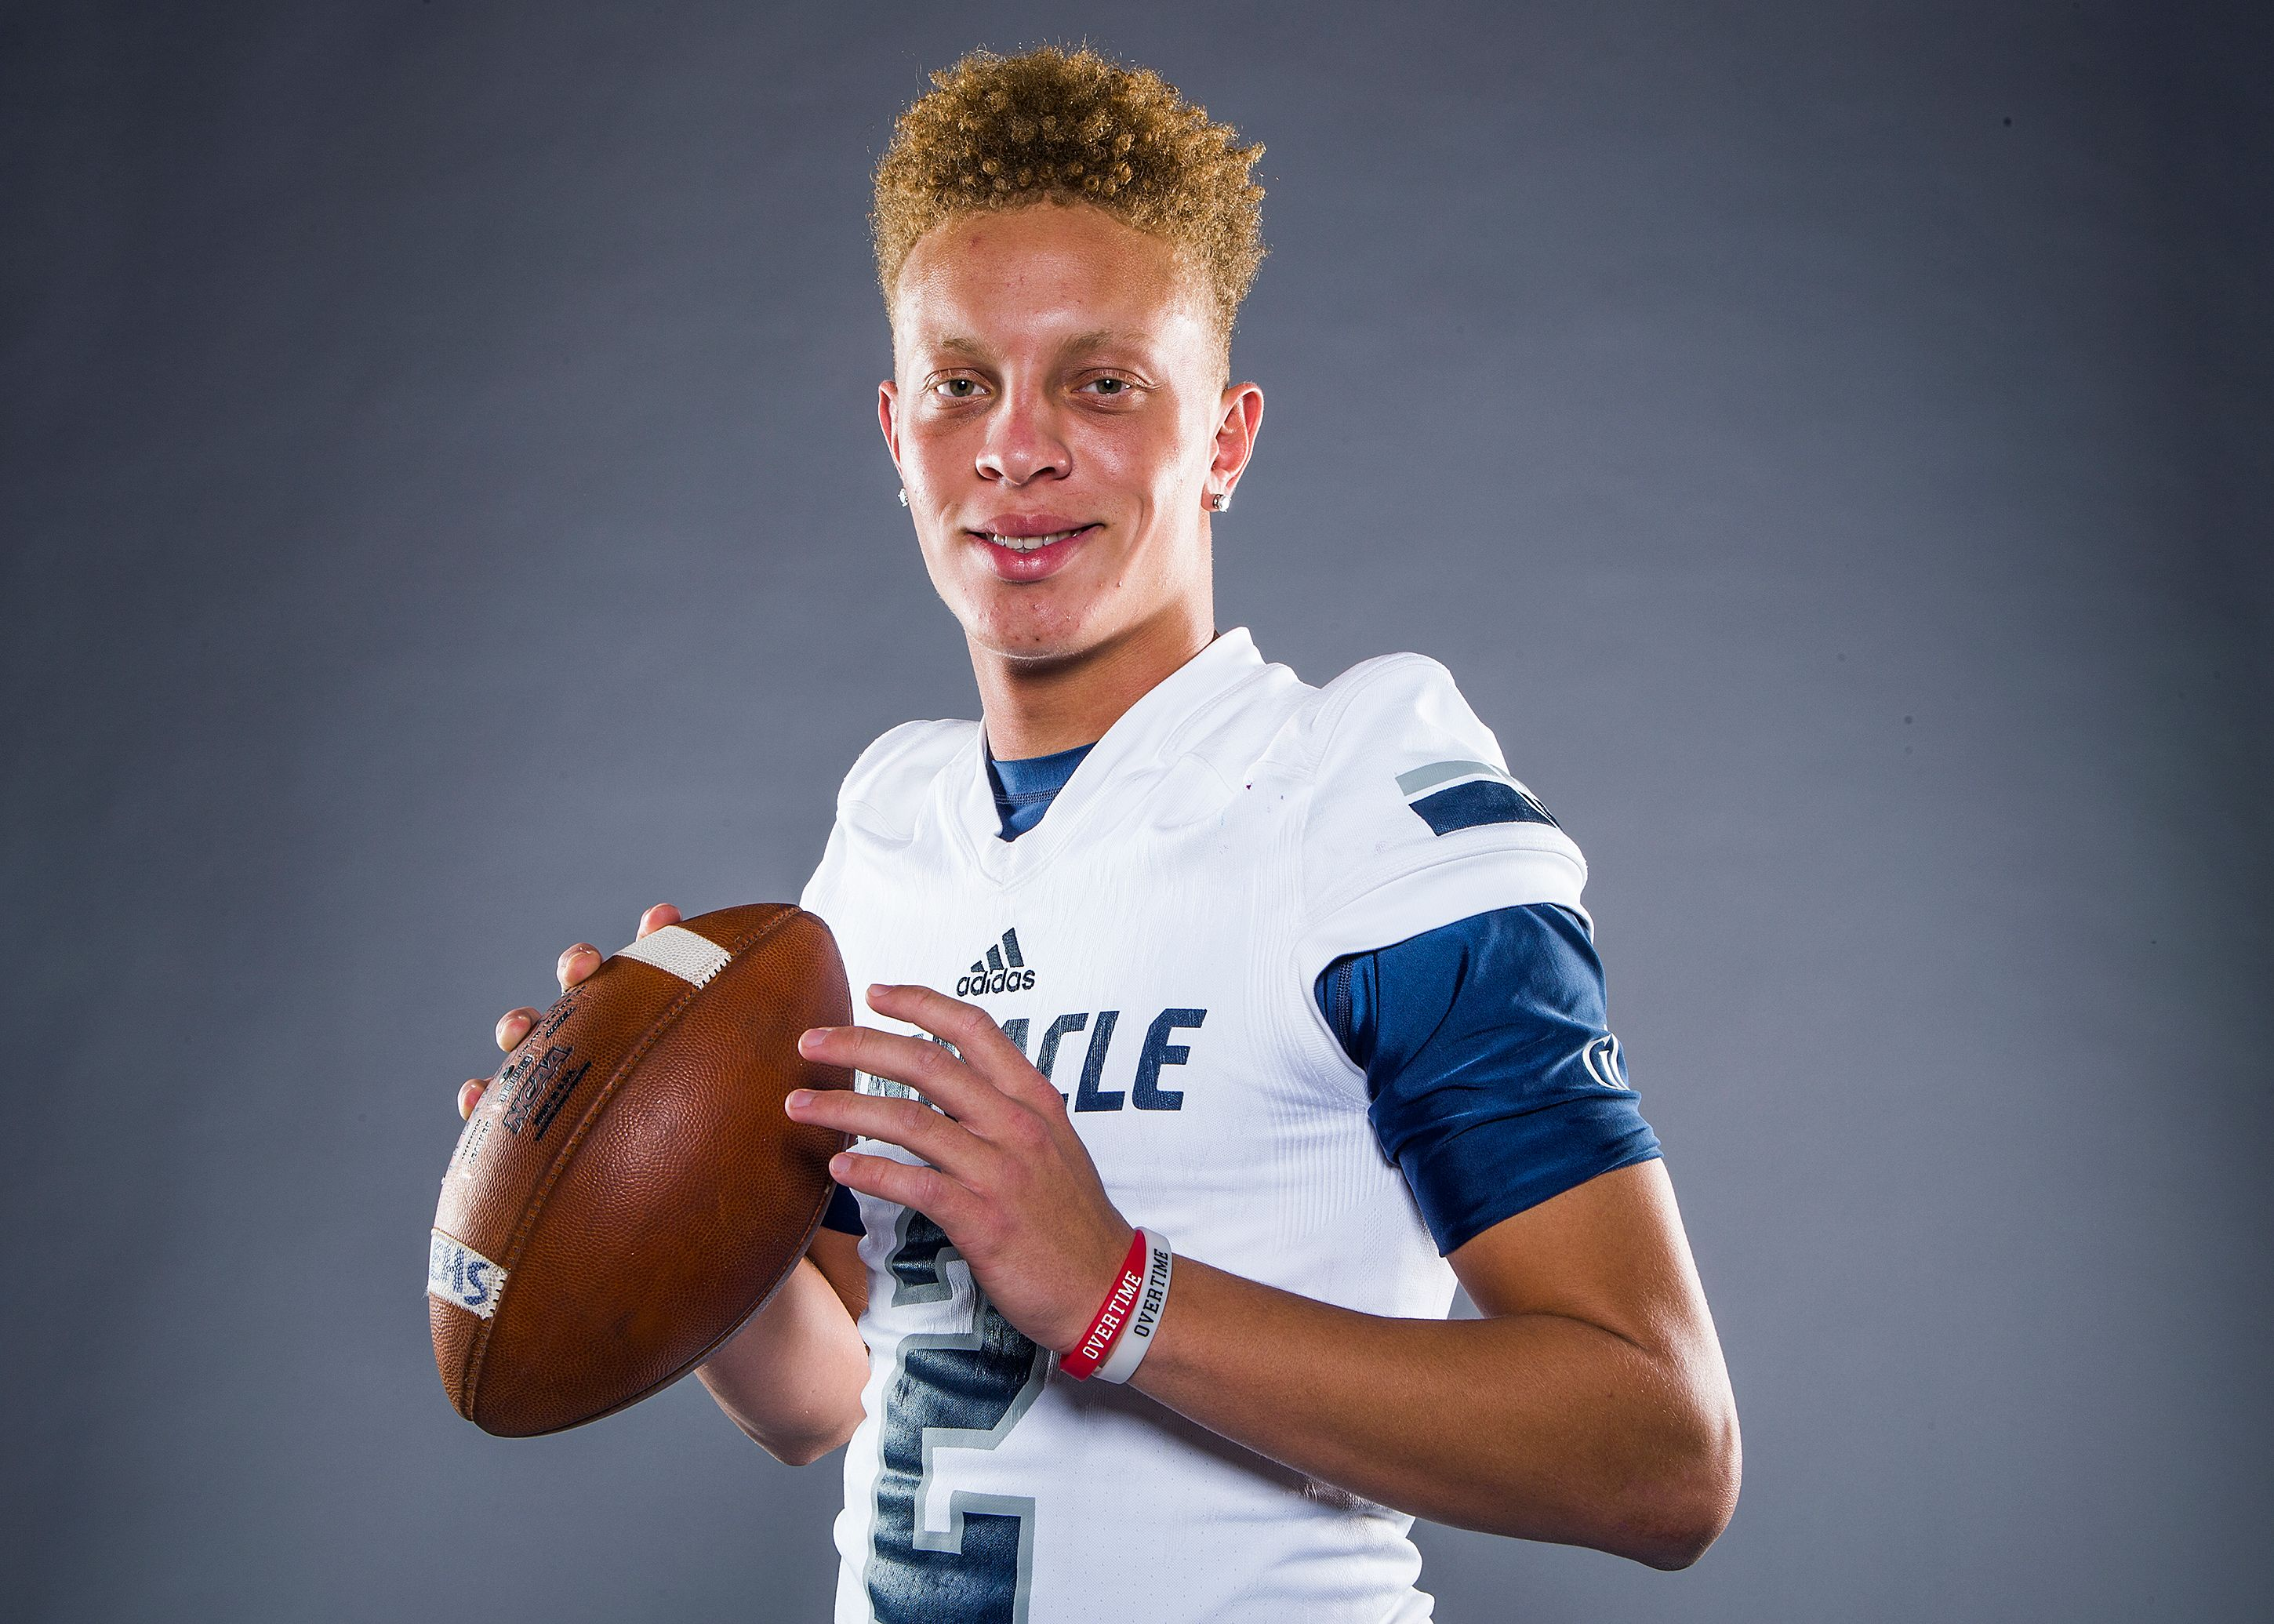 Oklahoma Commit Spencer Rattler Breaks Arizona Passing Yards Record